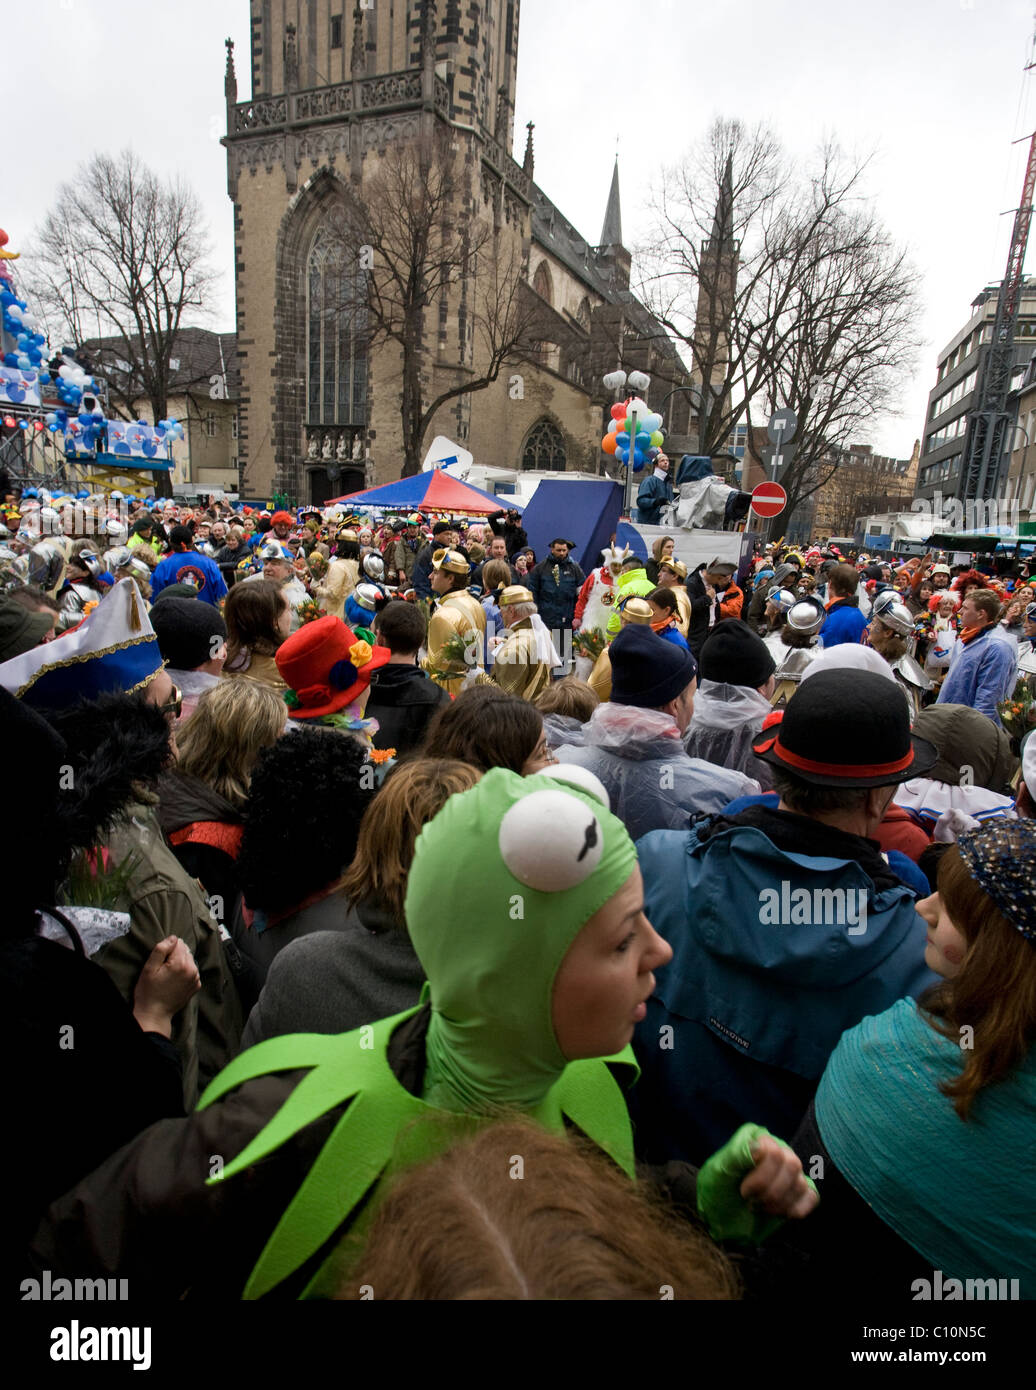 A crowd enjoys the carnival parade in the streets close to the Cathedral in Cologne (Germany) - Stock Image